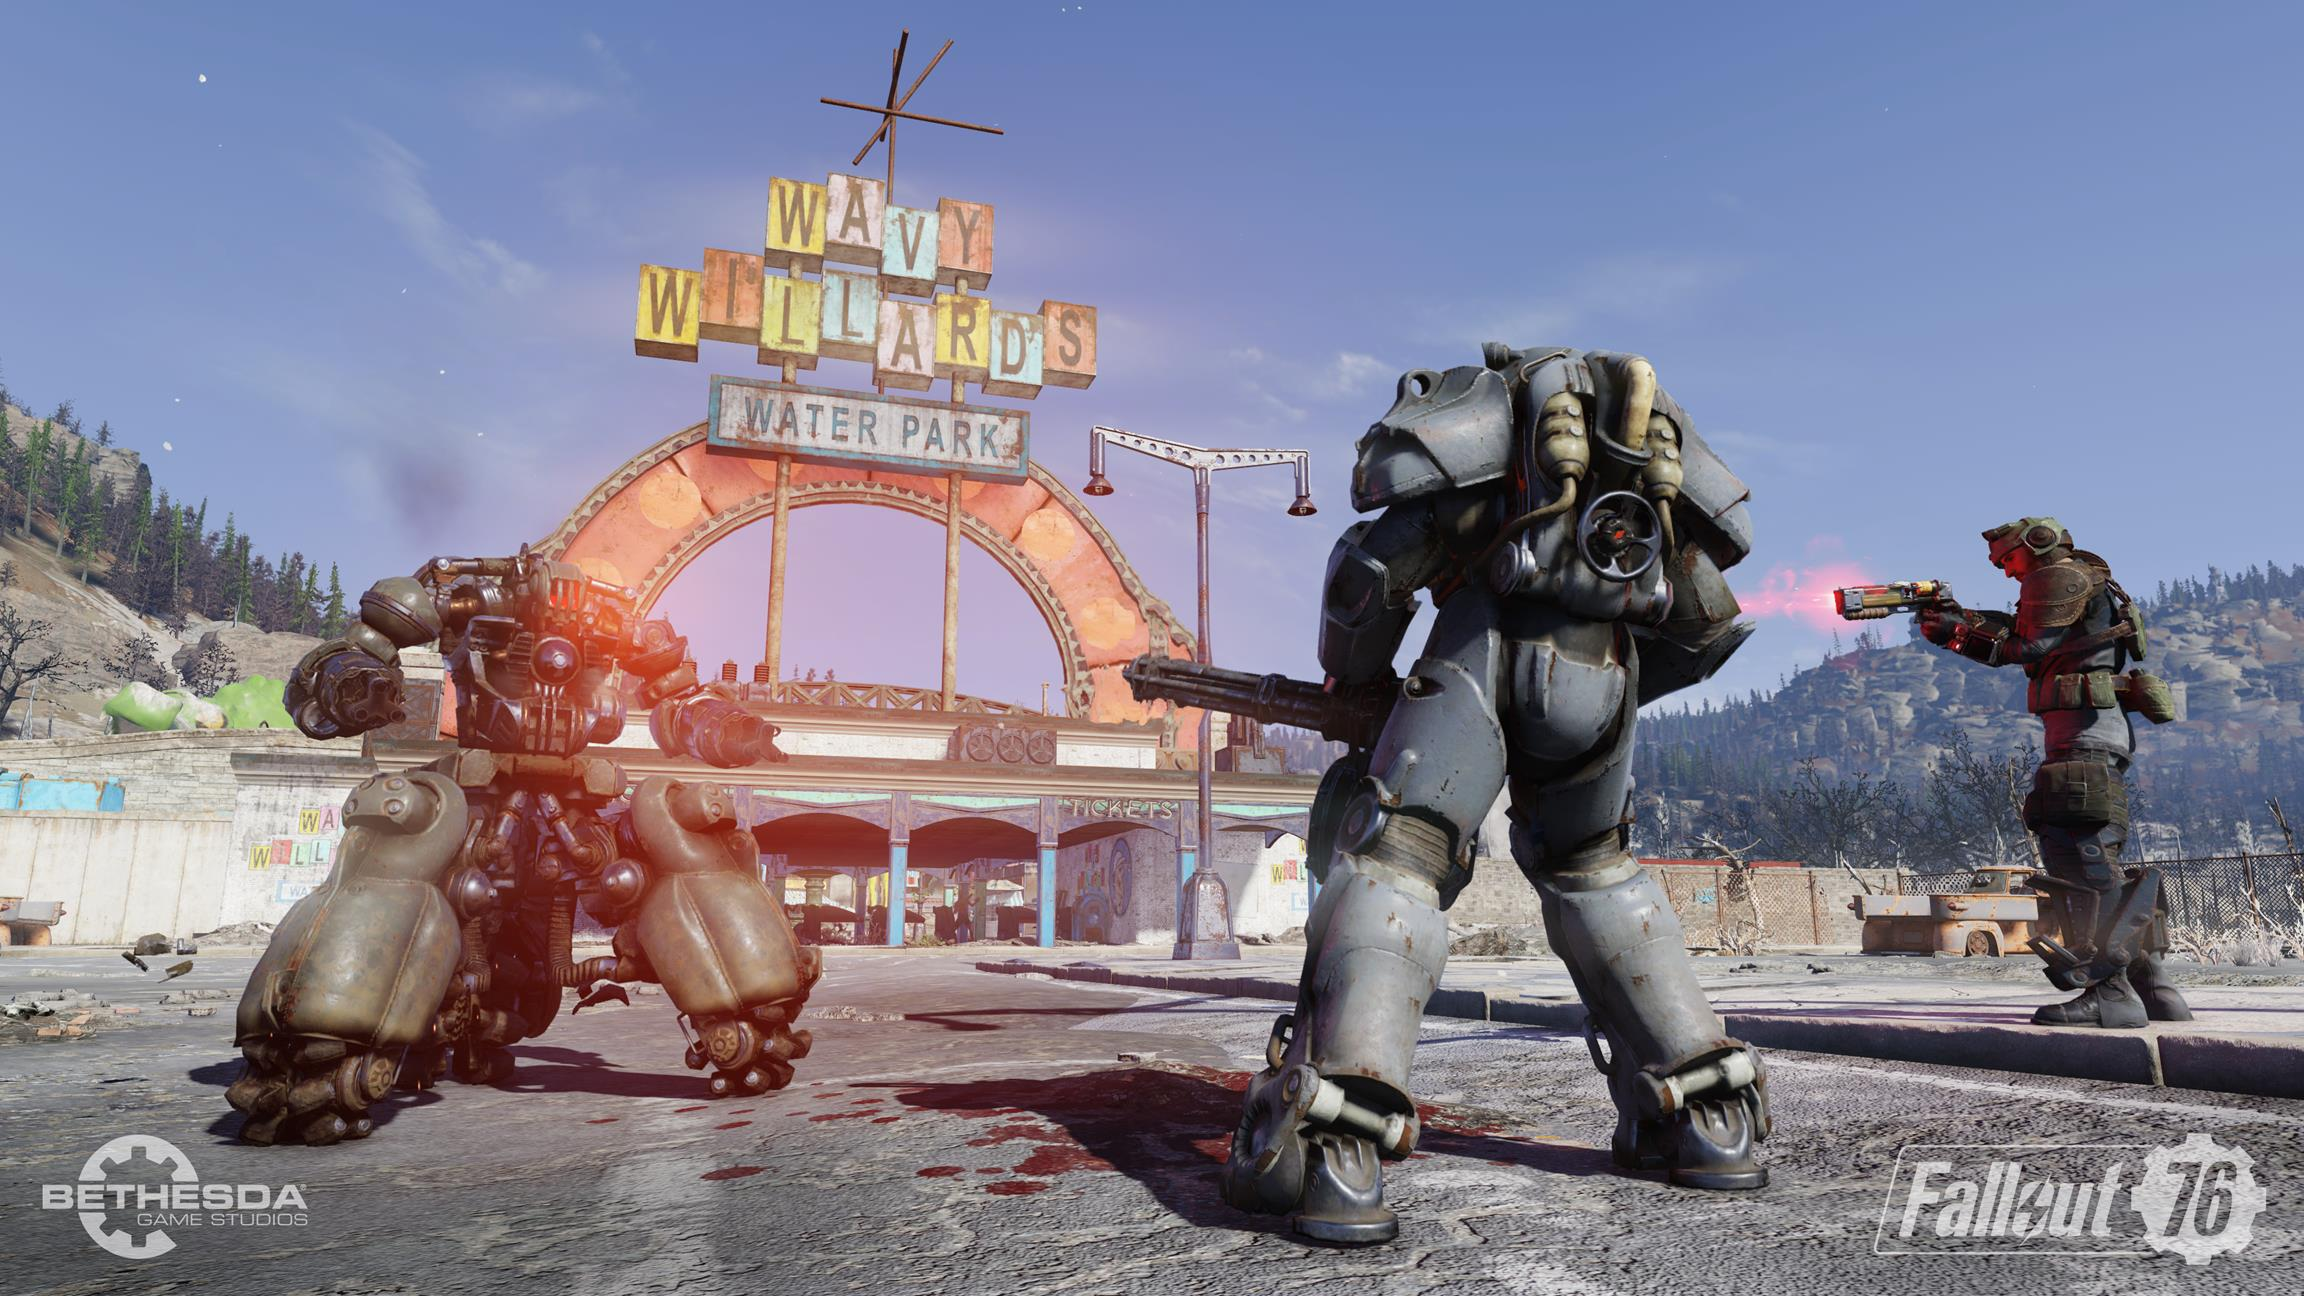 Fallout 76 Guide: How To Survive The Wasteland Once Again